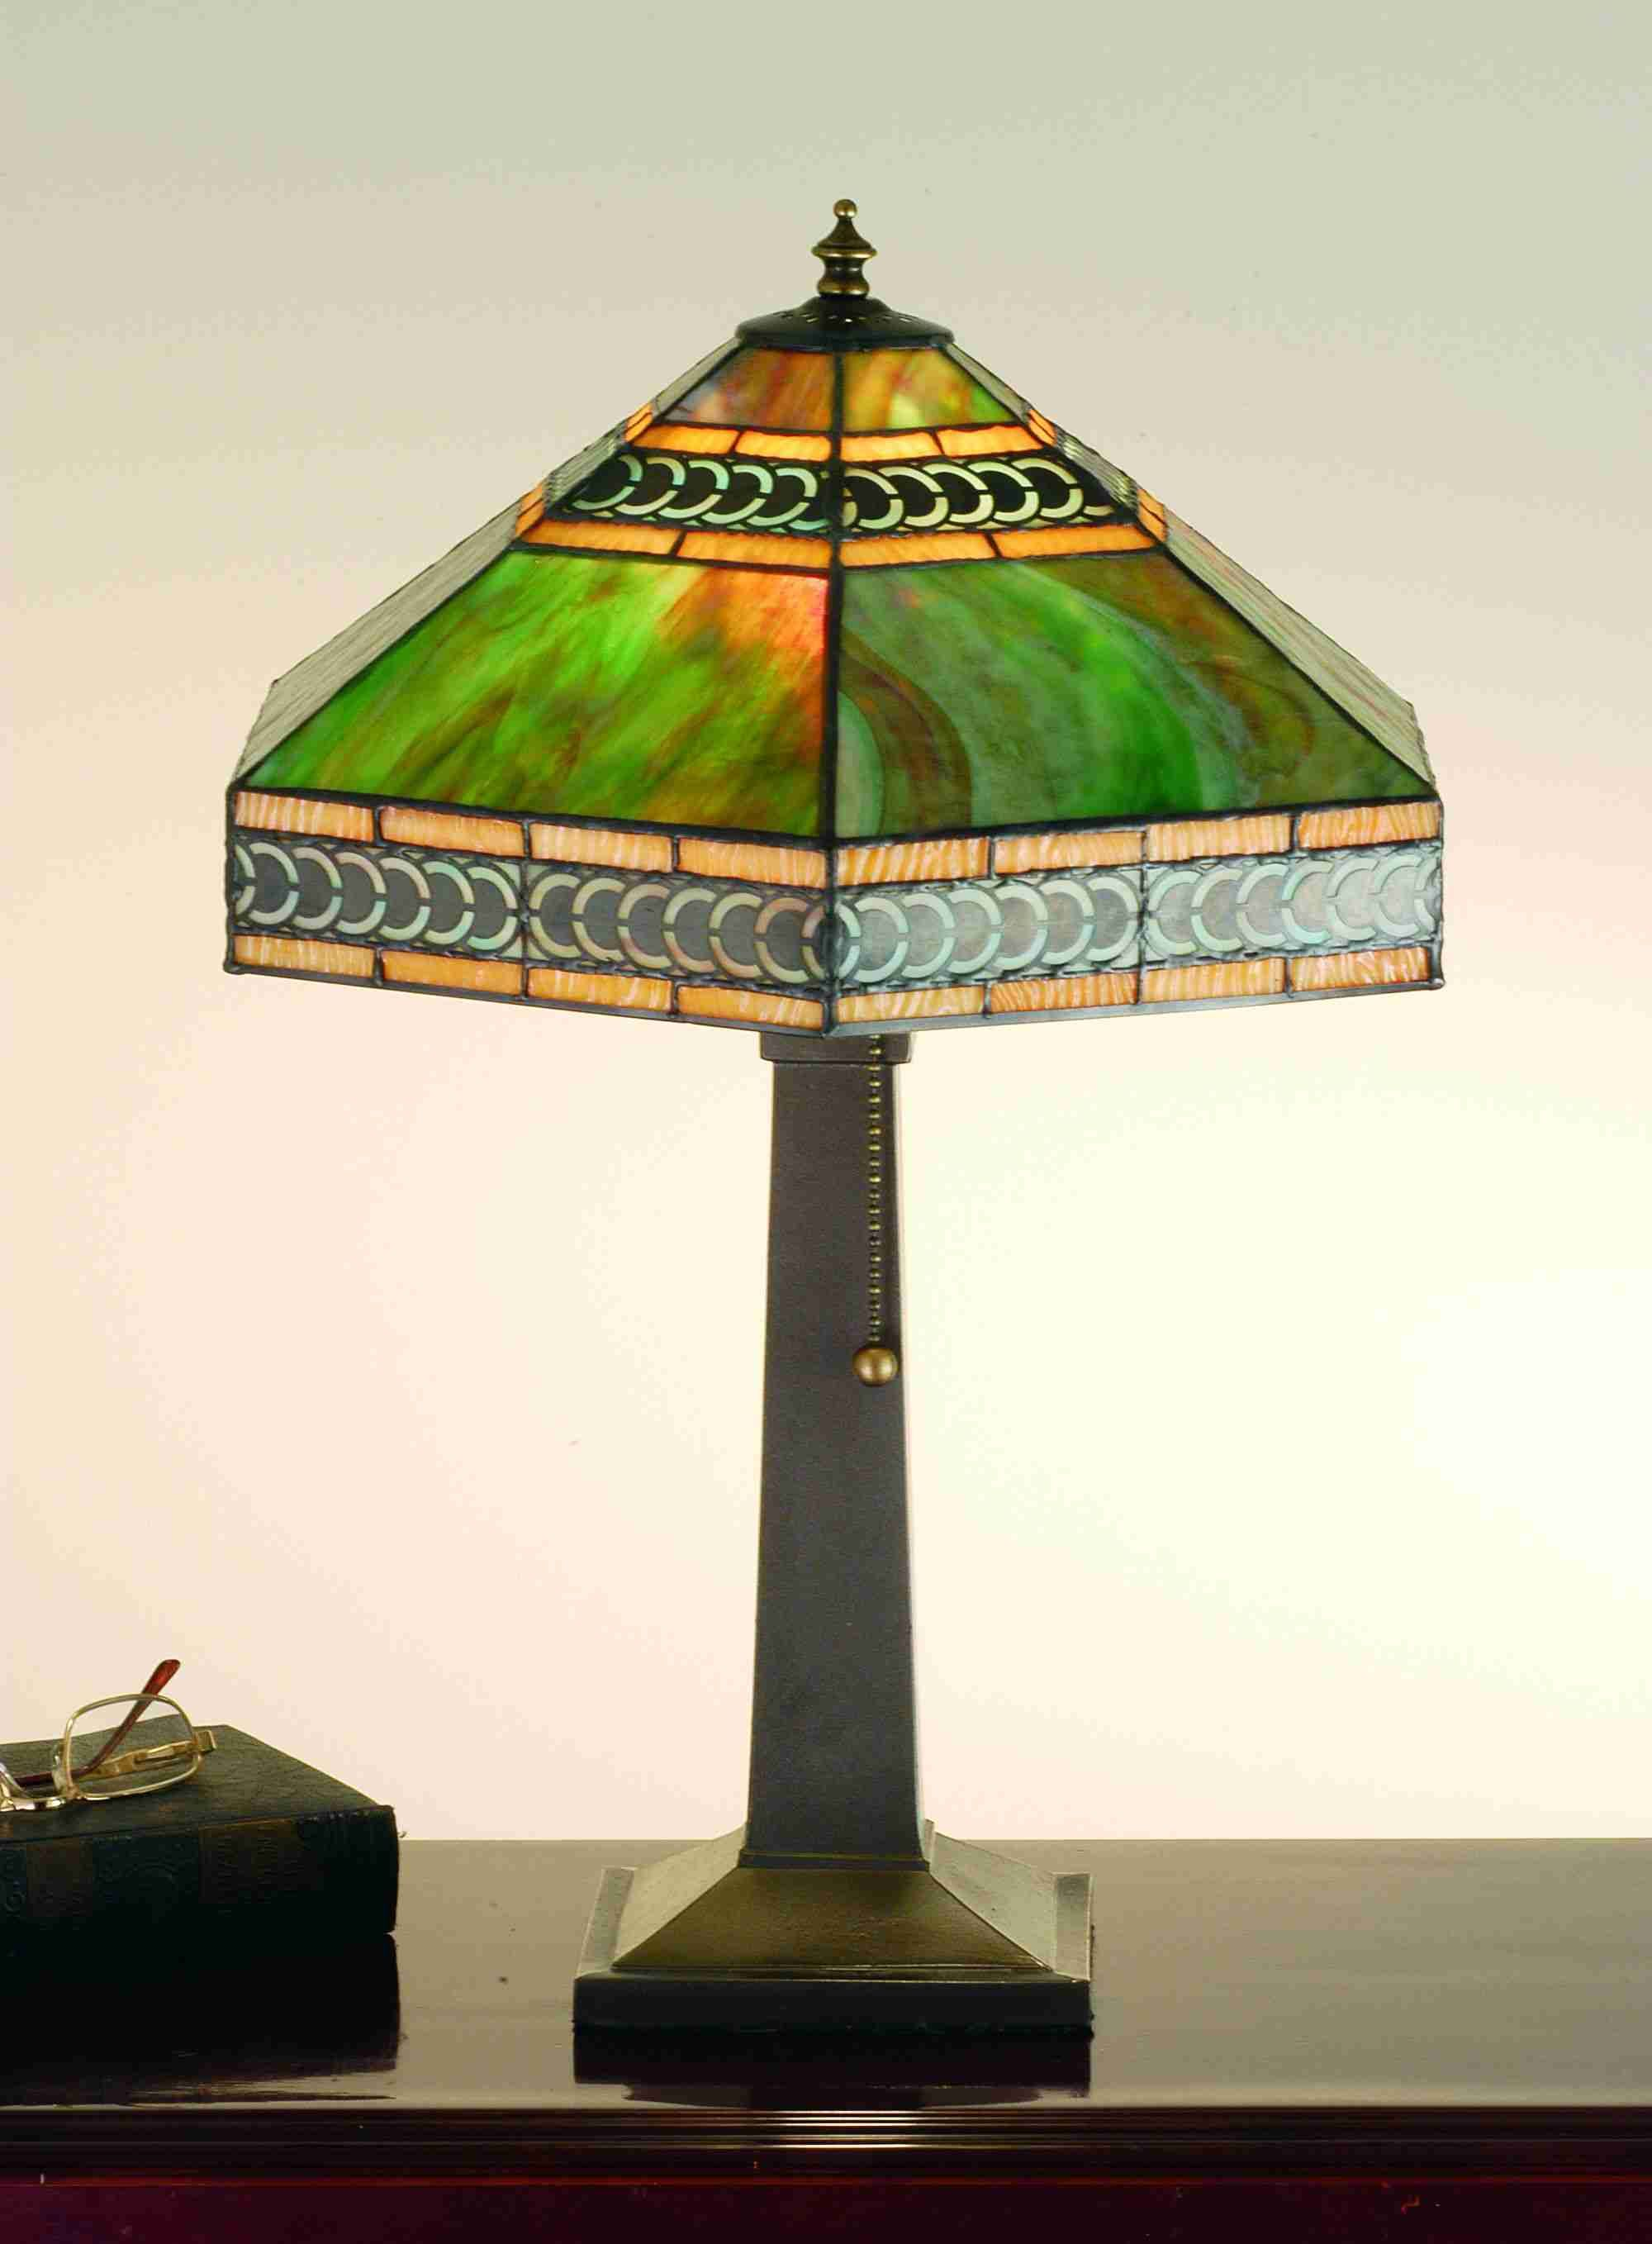 Stained glass lamp shades for floor lamps doces abobrinhas glass stained glass lamp shades for floor lamps mozeypictures Image collections